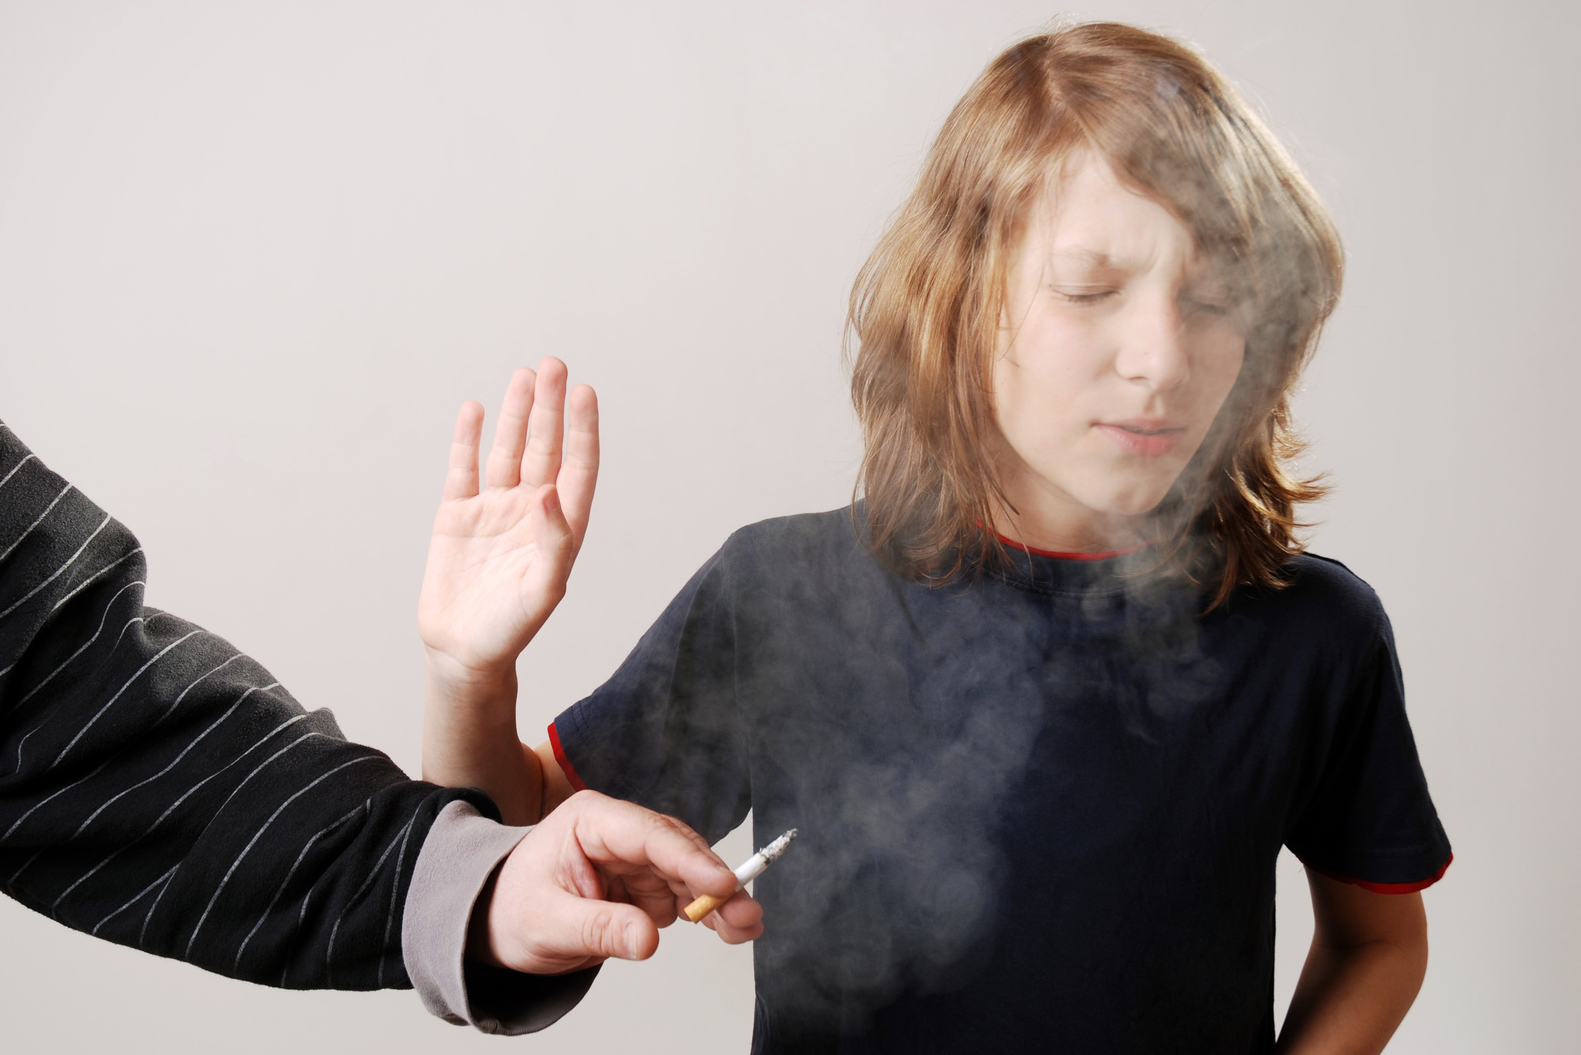 secondhand smoking is dangerous to your health Tobacco smoke is incredibly harmful to your health there's no safe way to smoke replacing your cigarette with a cigar, pipe, or hookah won't help you avoid the health risks.